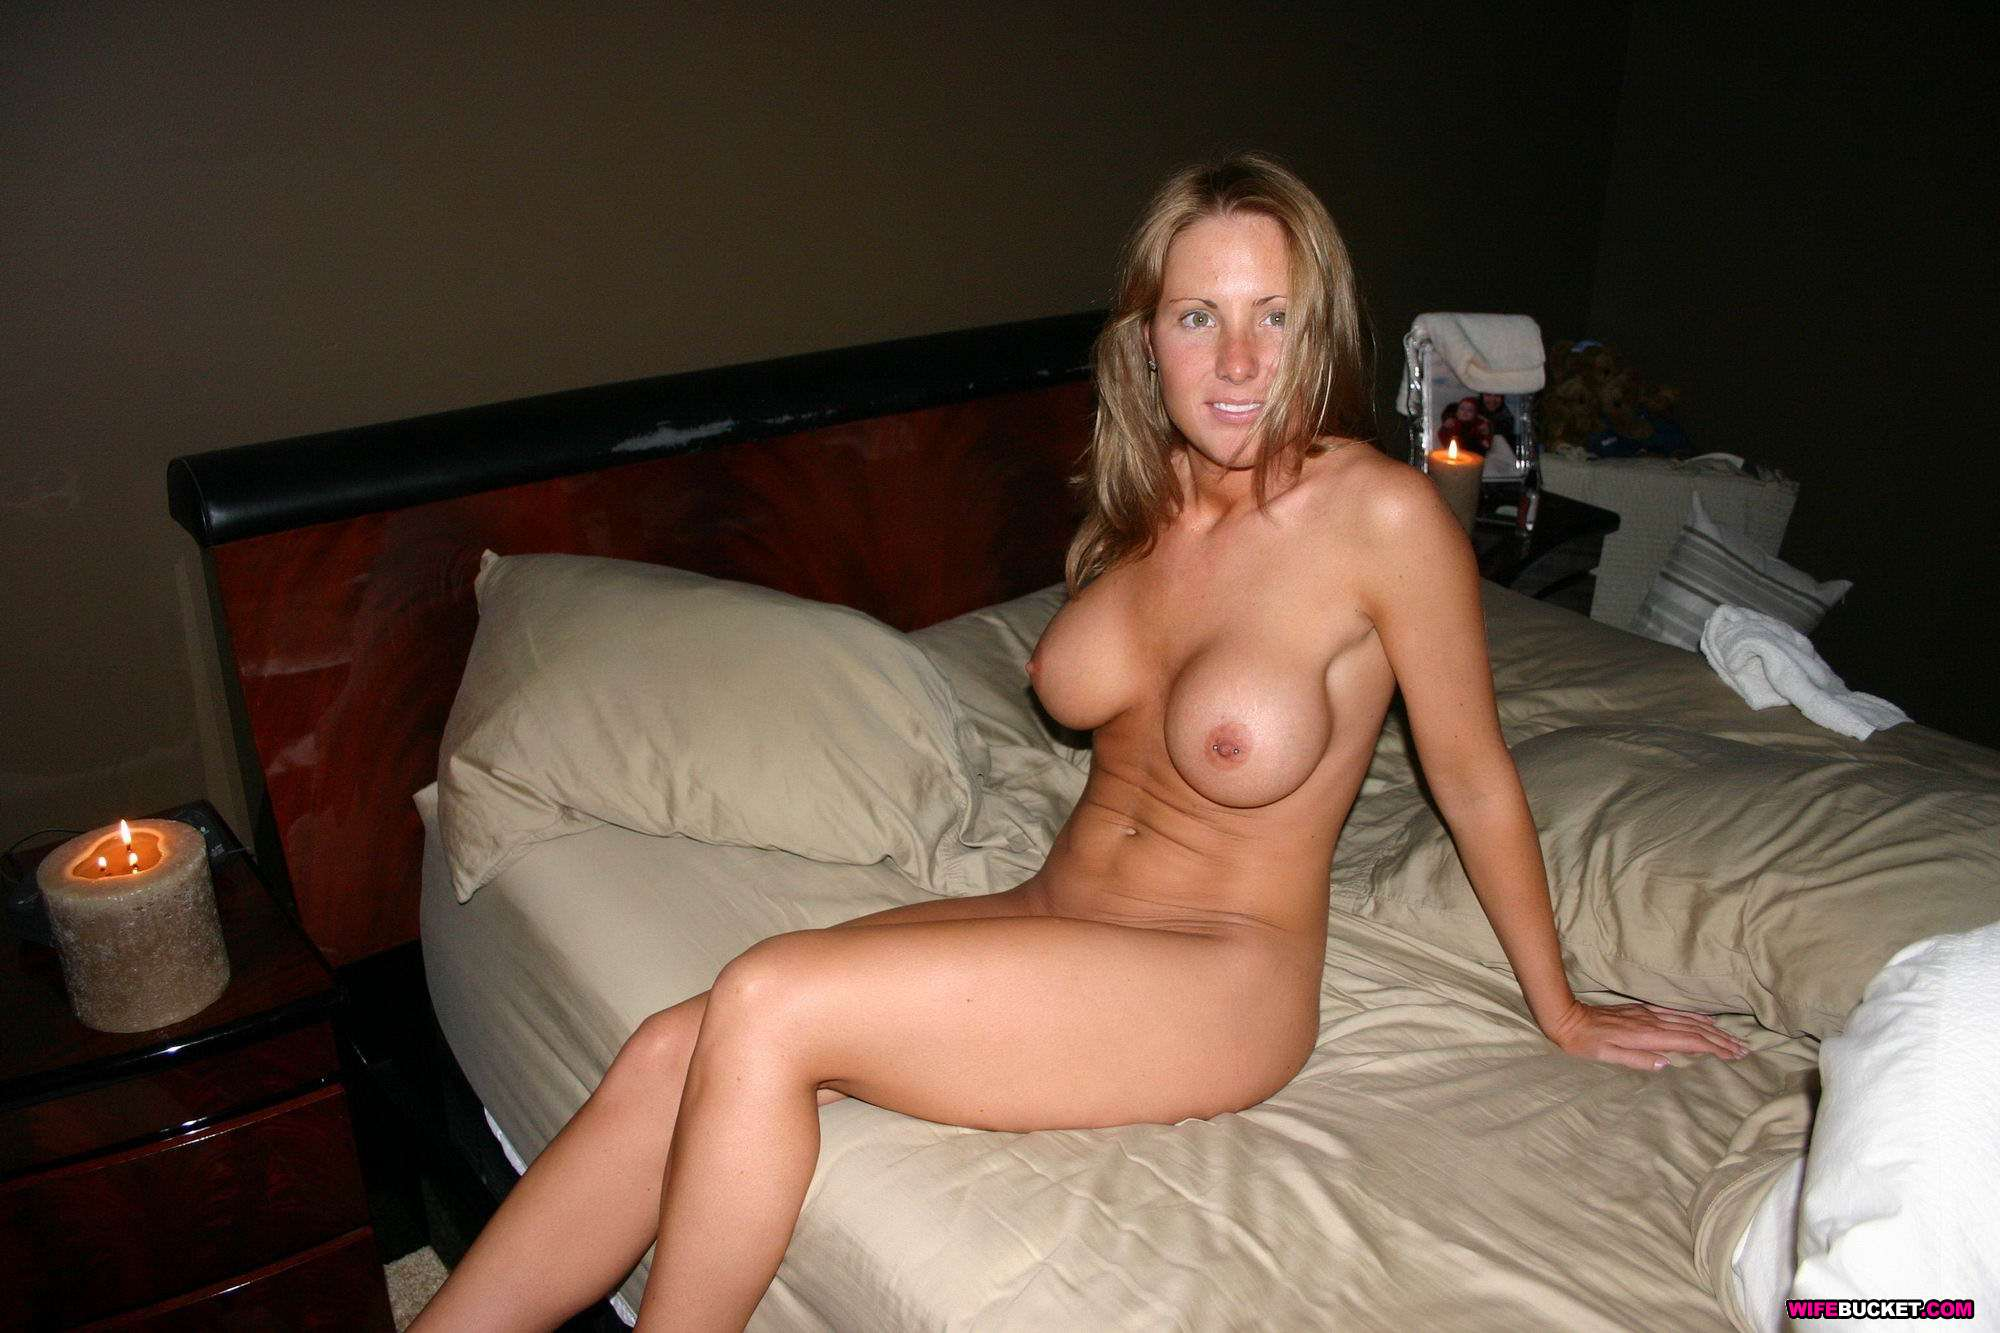 nude-girlfriend-and-wife-pics